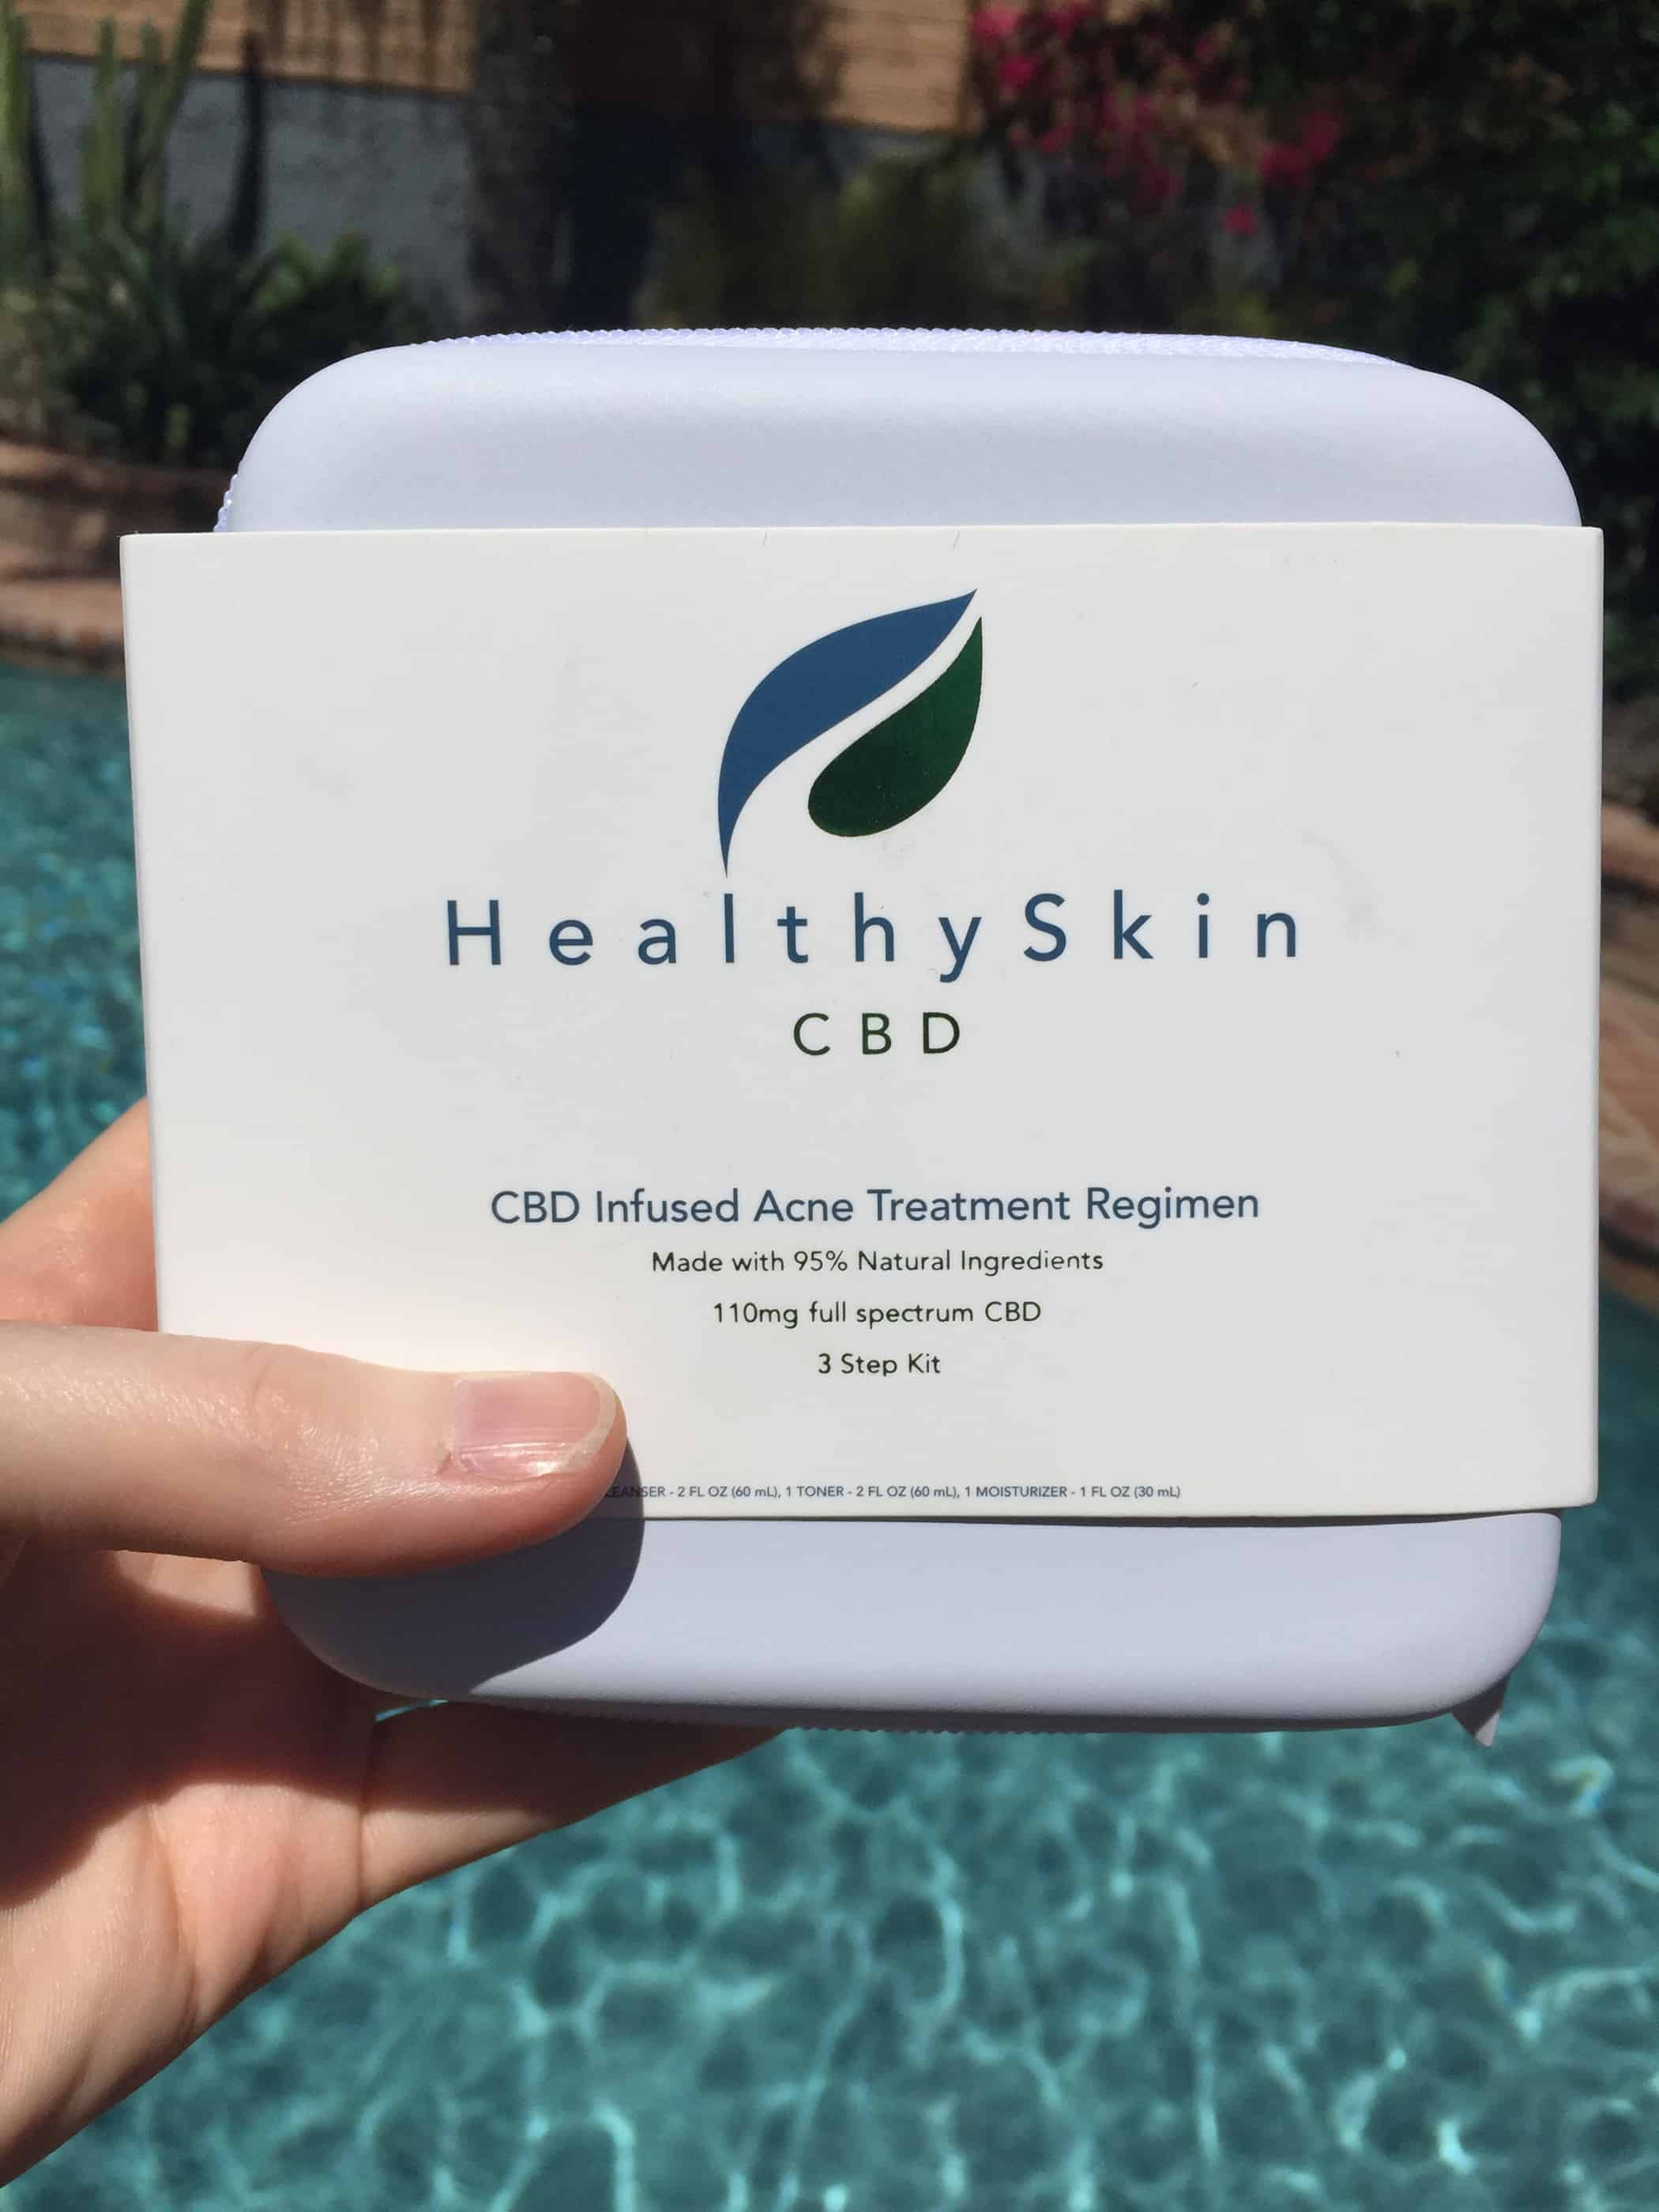 healthy skin cbd cbd infused acne treatment regimen review save on cannabis review